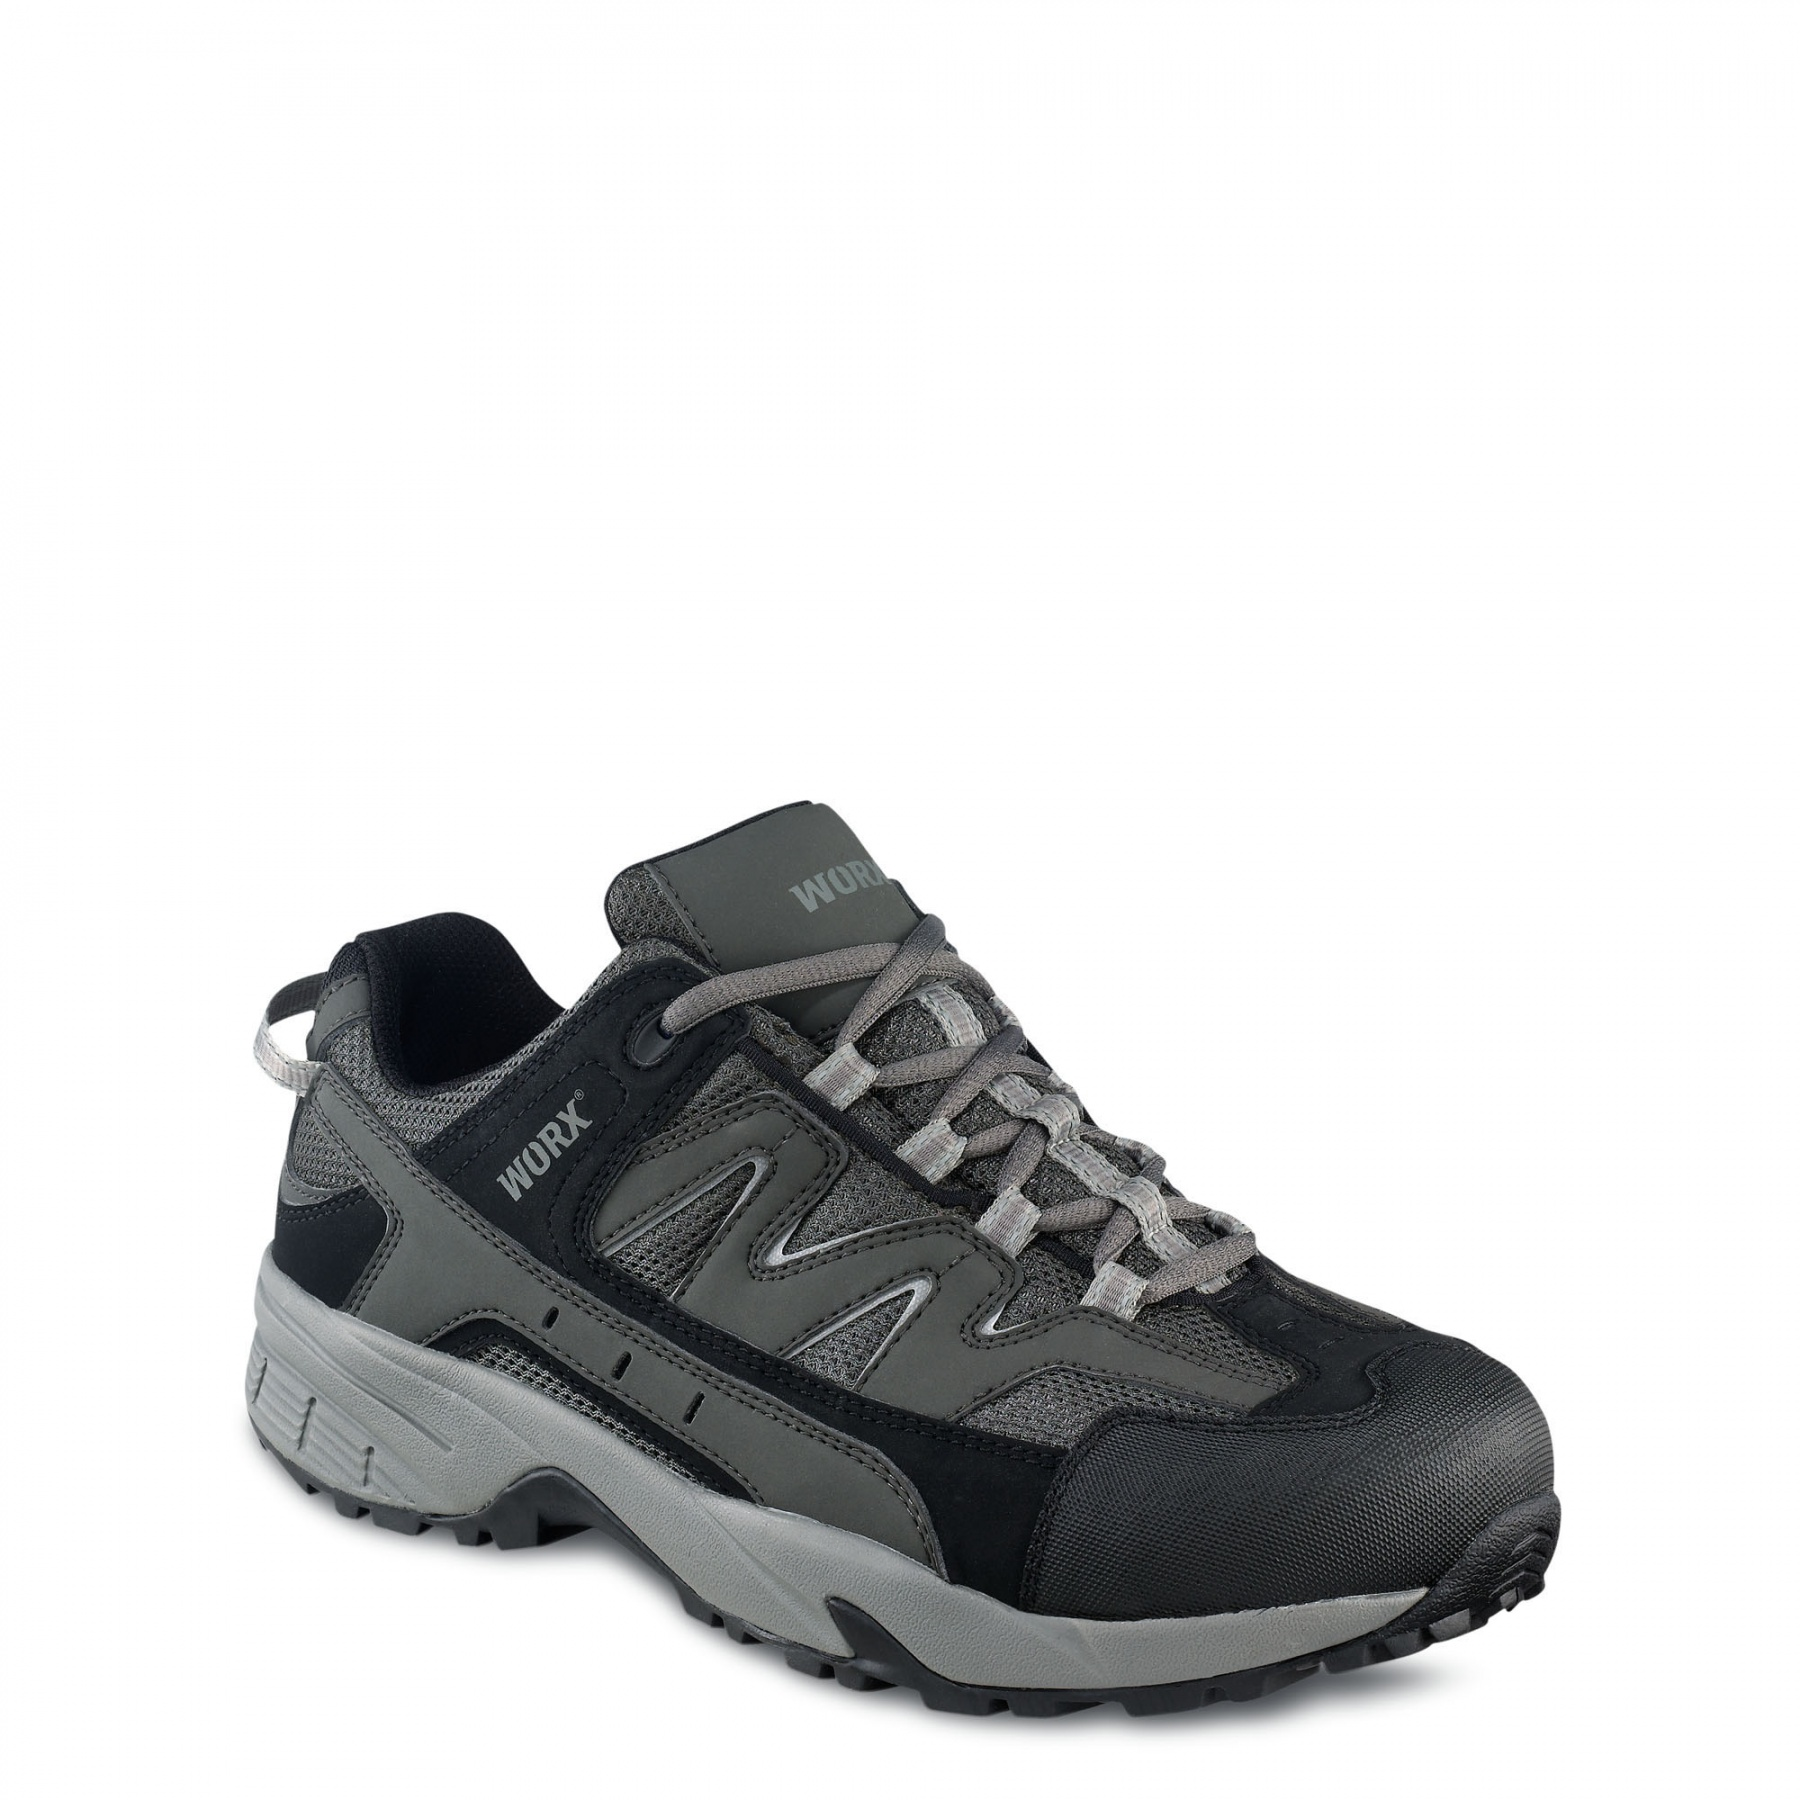 Worx Laced Safety Shoes Gents Footwear